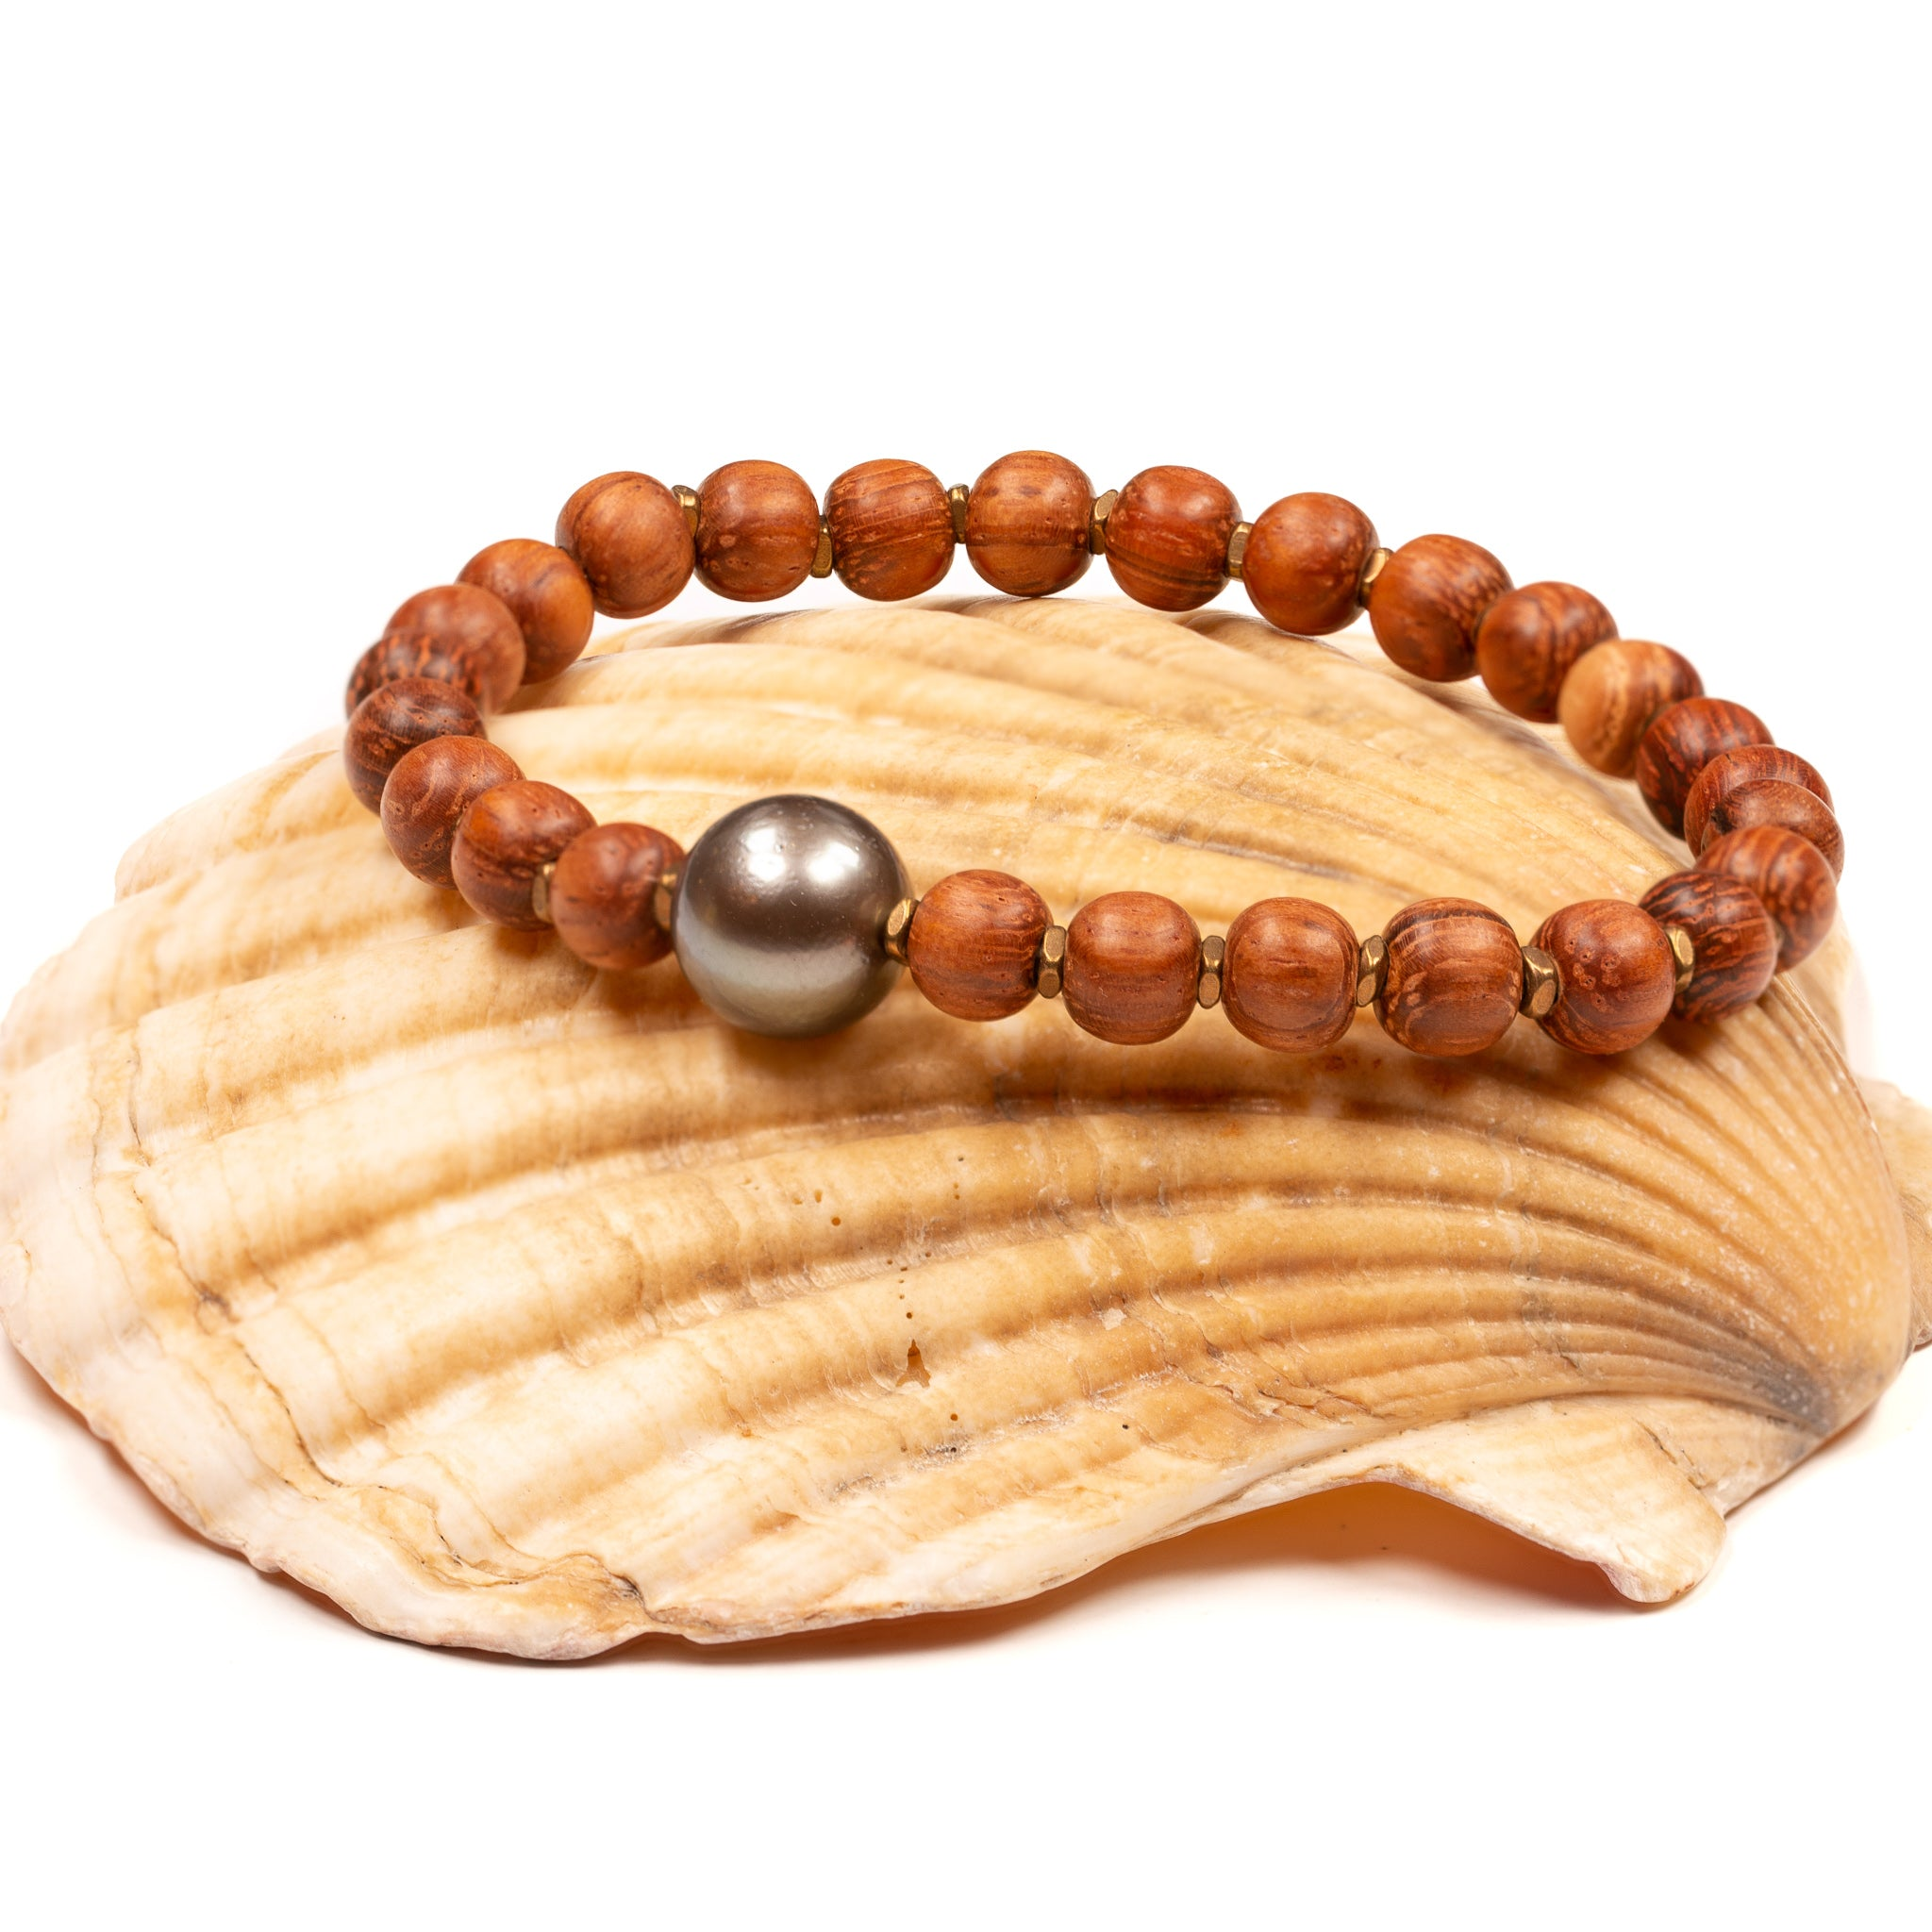 Mauka to Makai: Wood & Tahitian Pearl Stretchy Cord Bracelet Kit